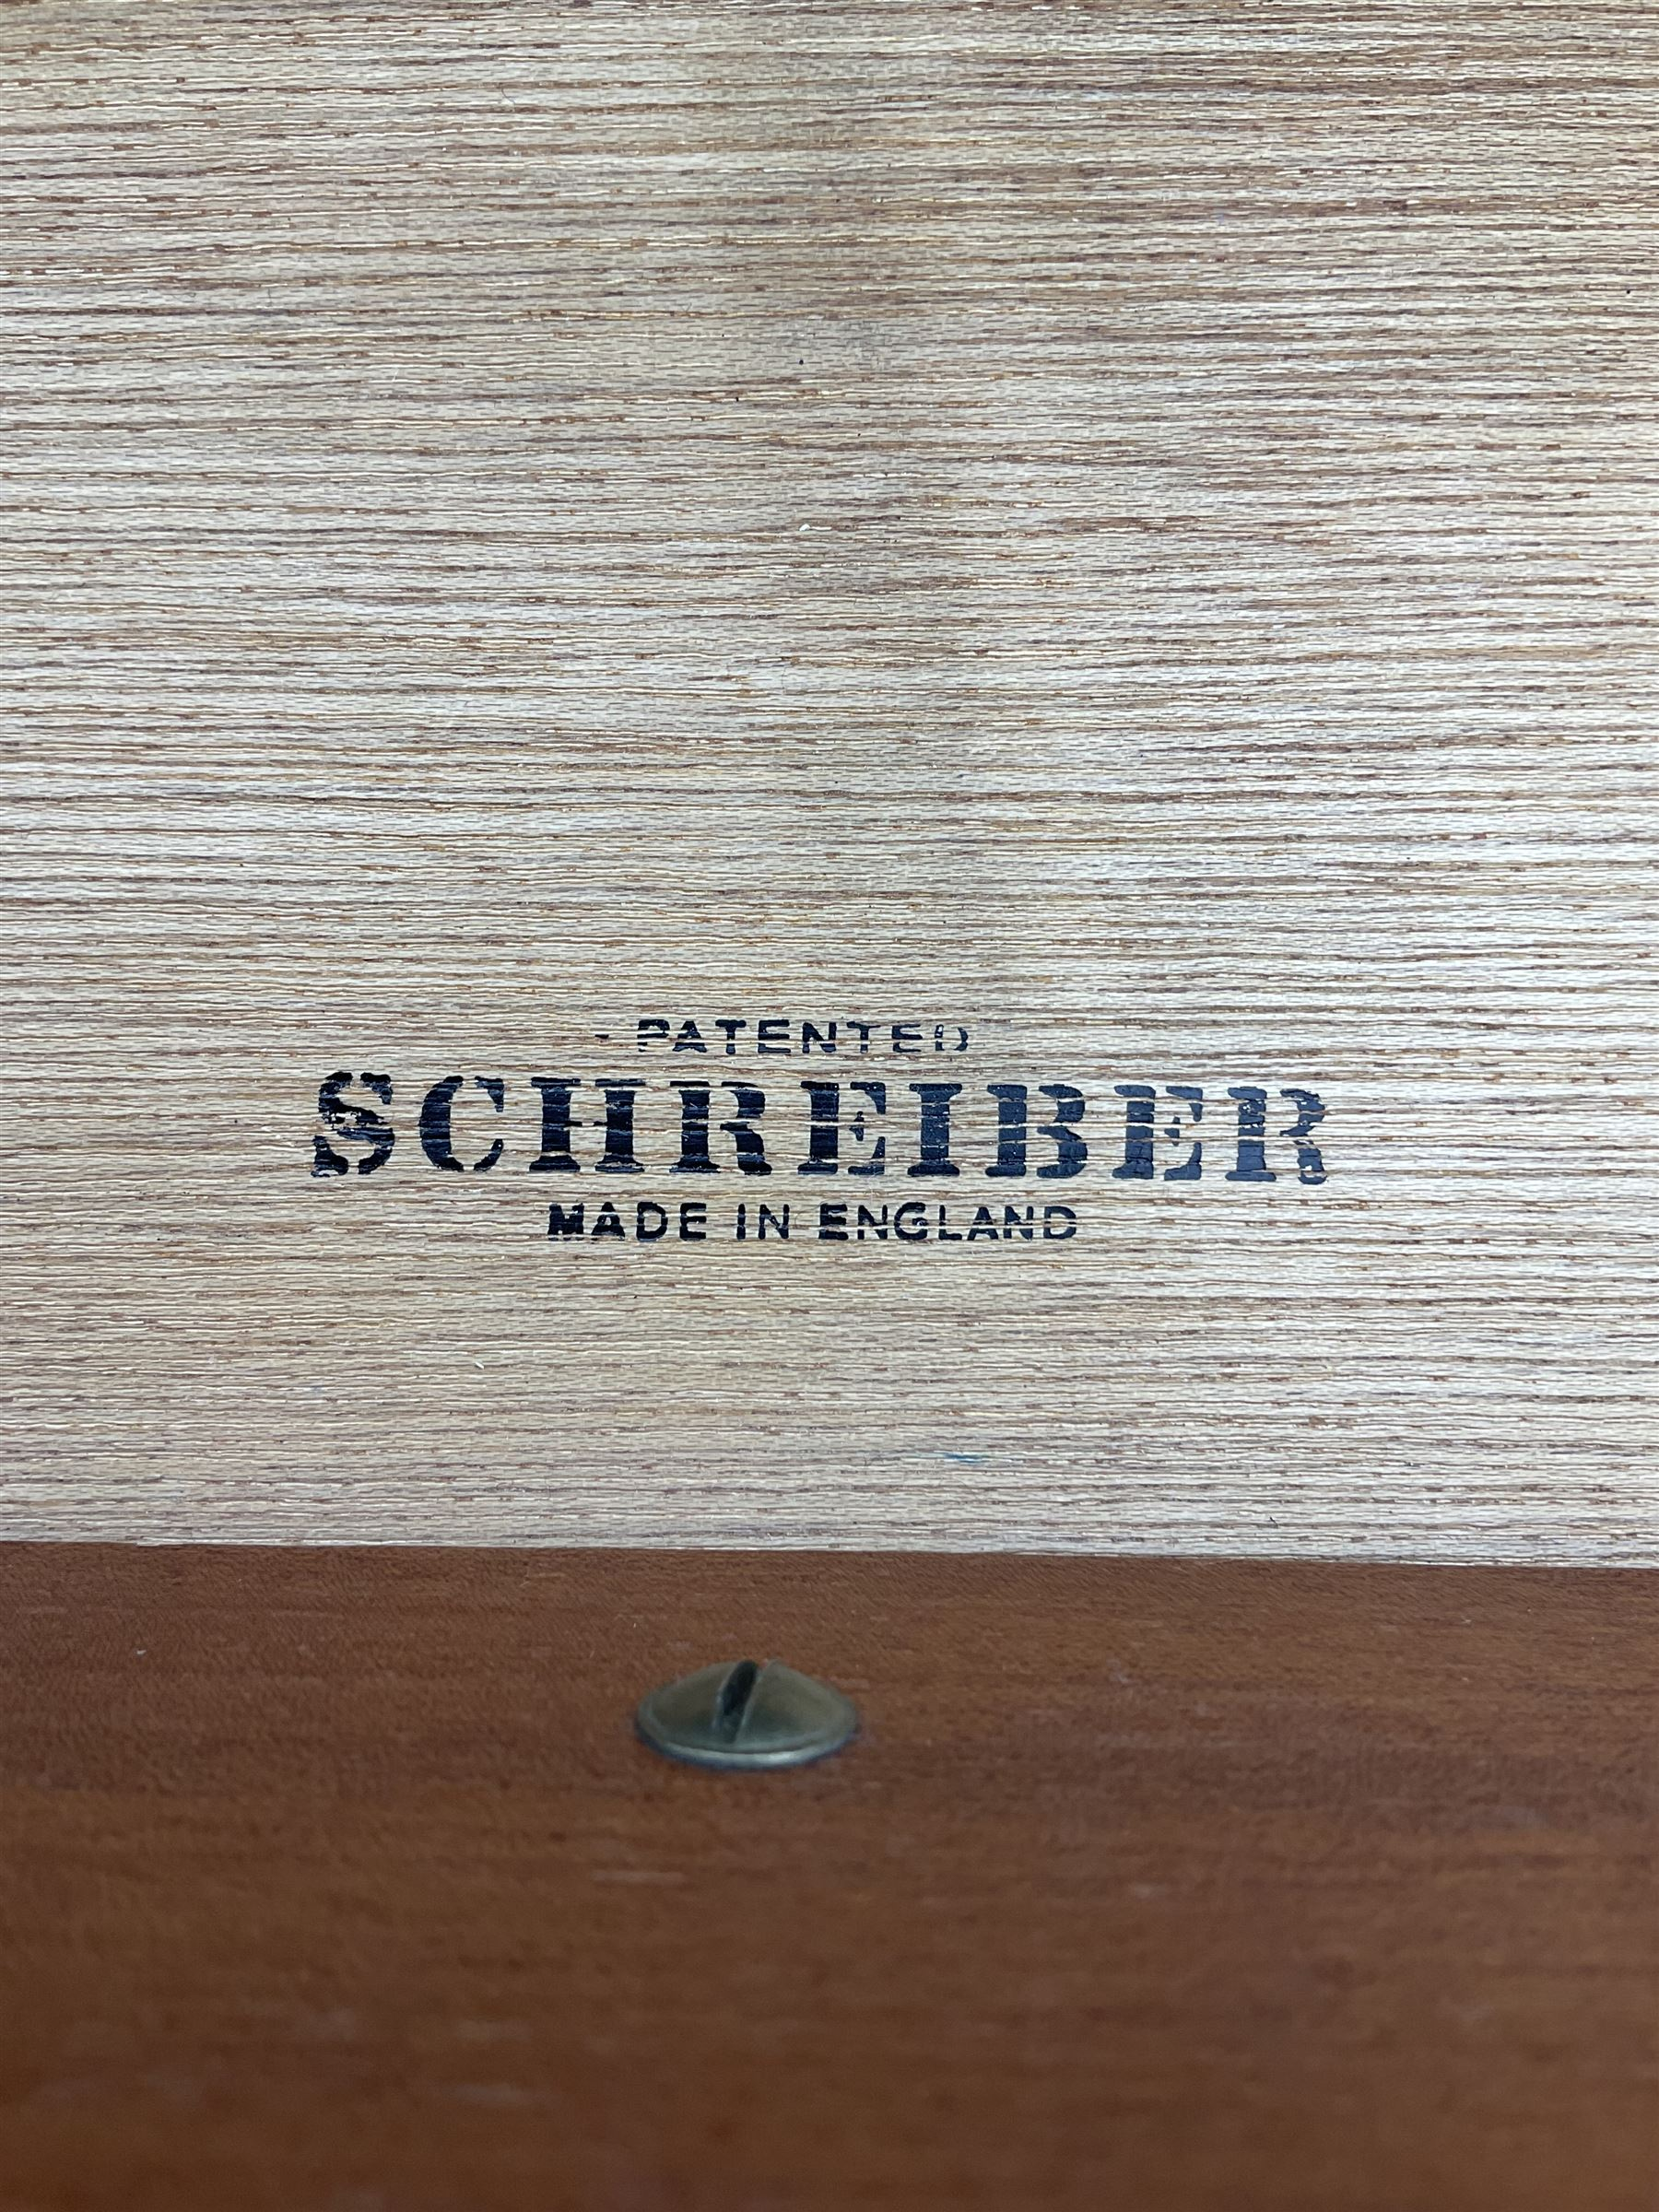 Schreiber of England chest - Image 3 of 3